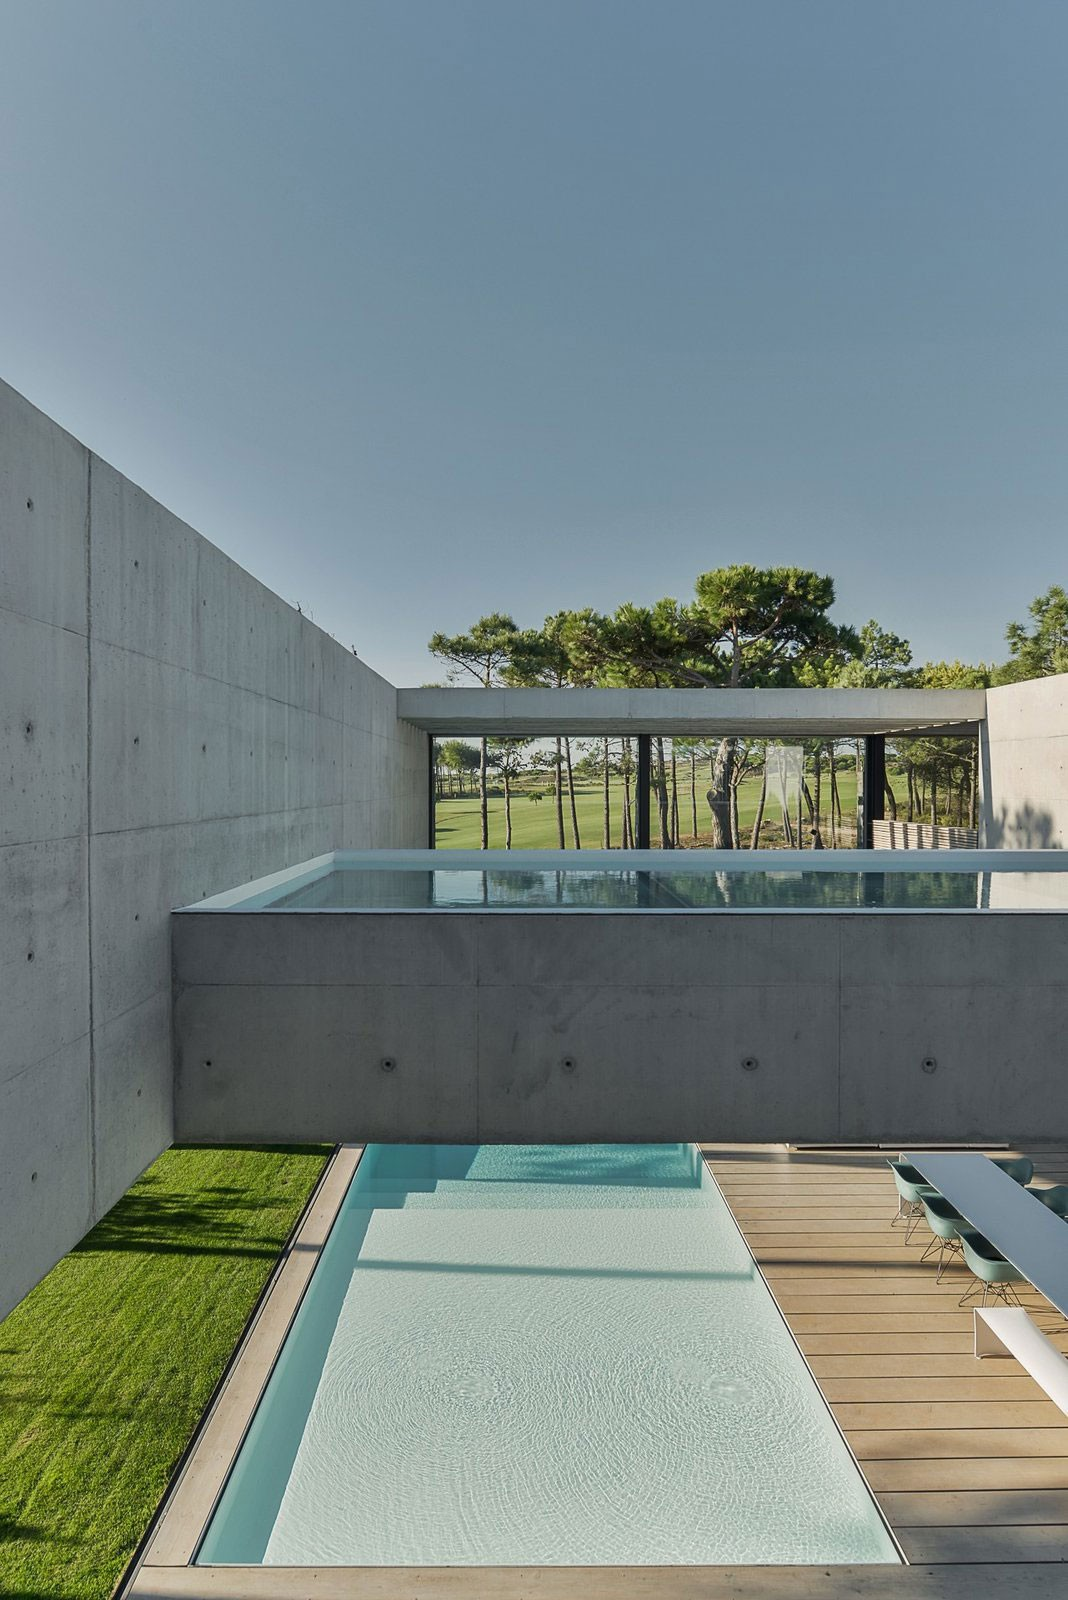 The-Wall-House-on-Portuguese-Riviera-by-Guedes-Cruz-Arquitectos-Yellowtrace-03.jpg